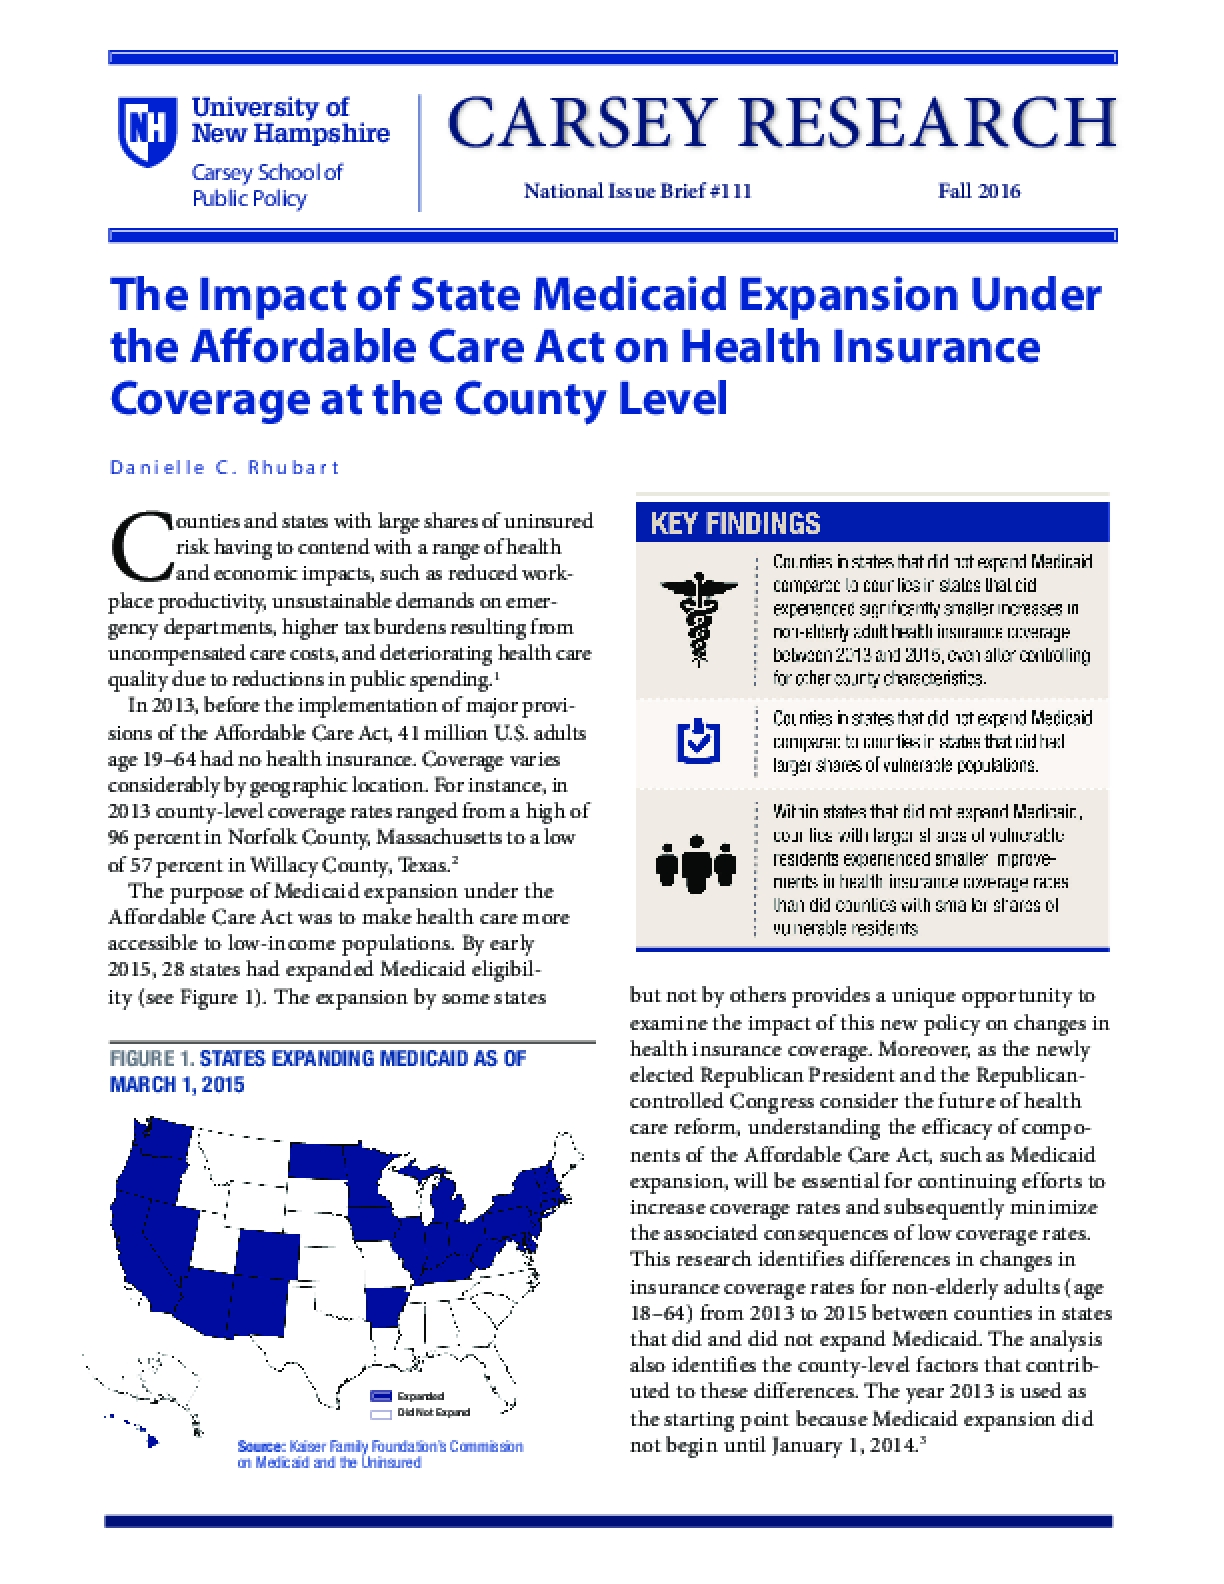 The Impact of State Medicaid Expansion Under the Affordable Care Act on Health Insurance Coverage at the County Level